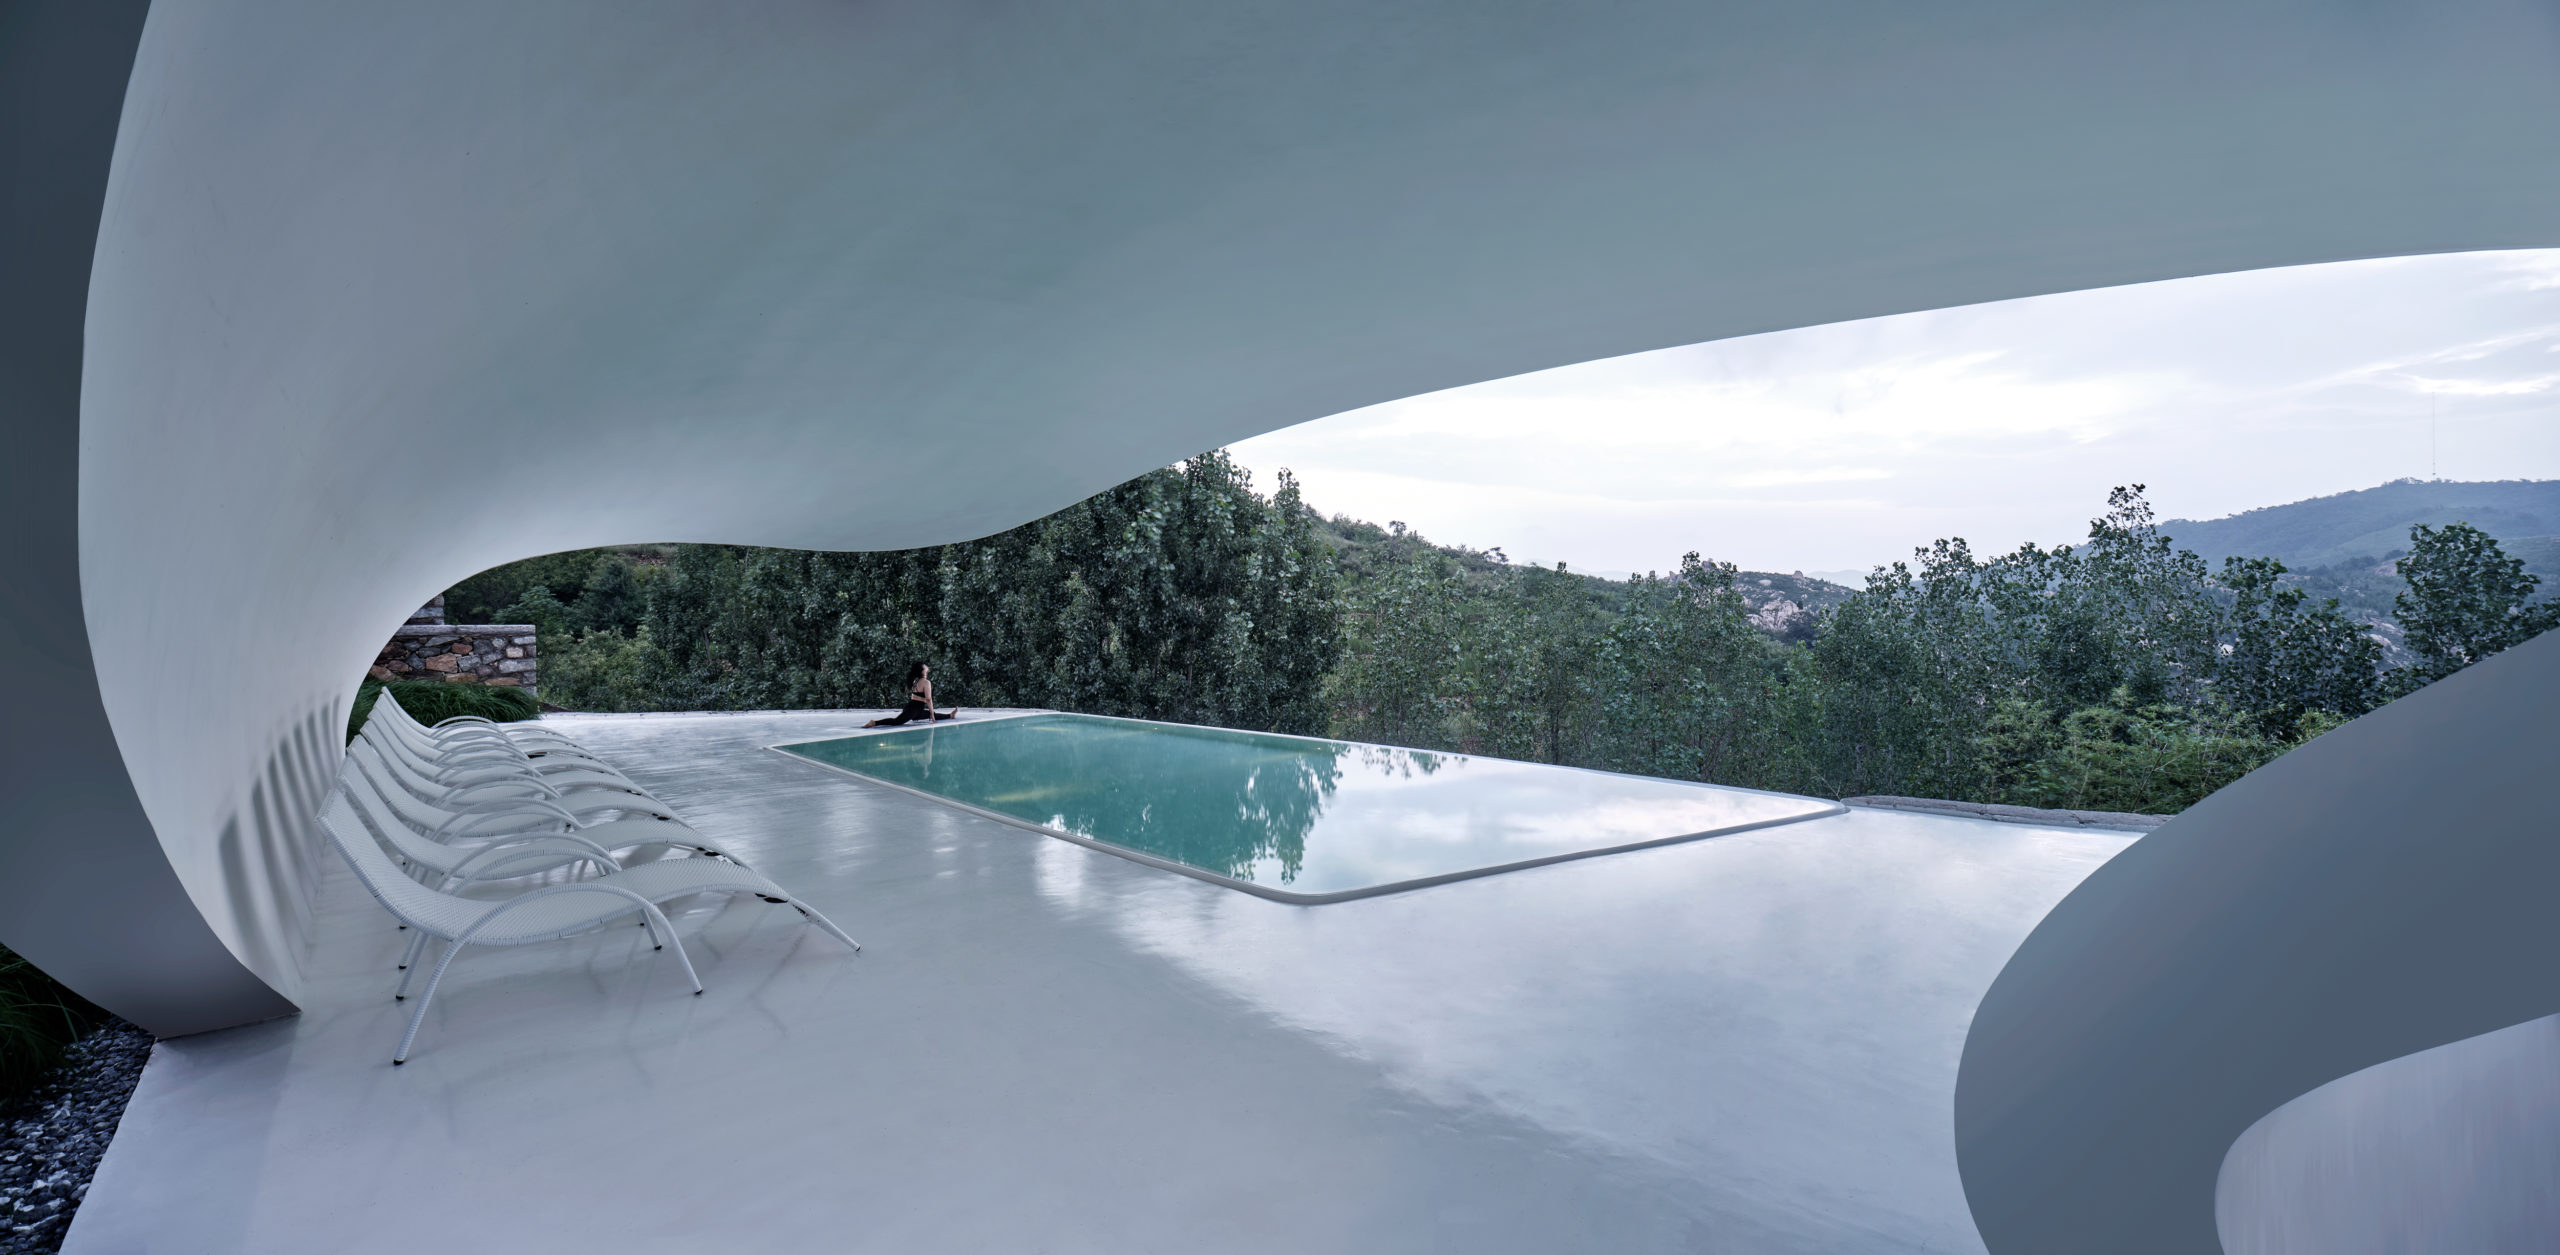 Jiunvfneg Bubble Pool and Supporting Facilities on Mount Tai by line+, Tai'an, China